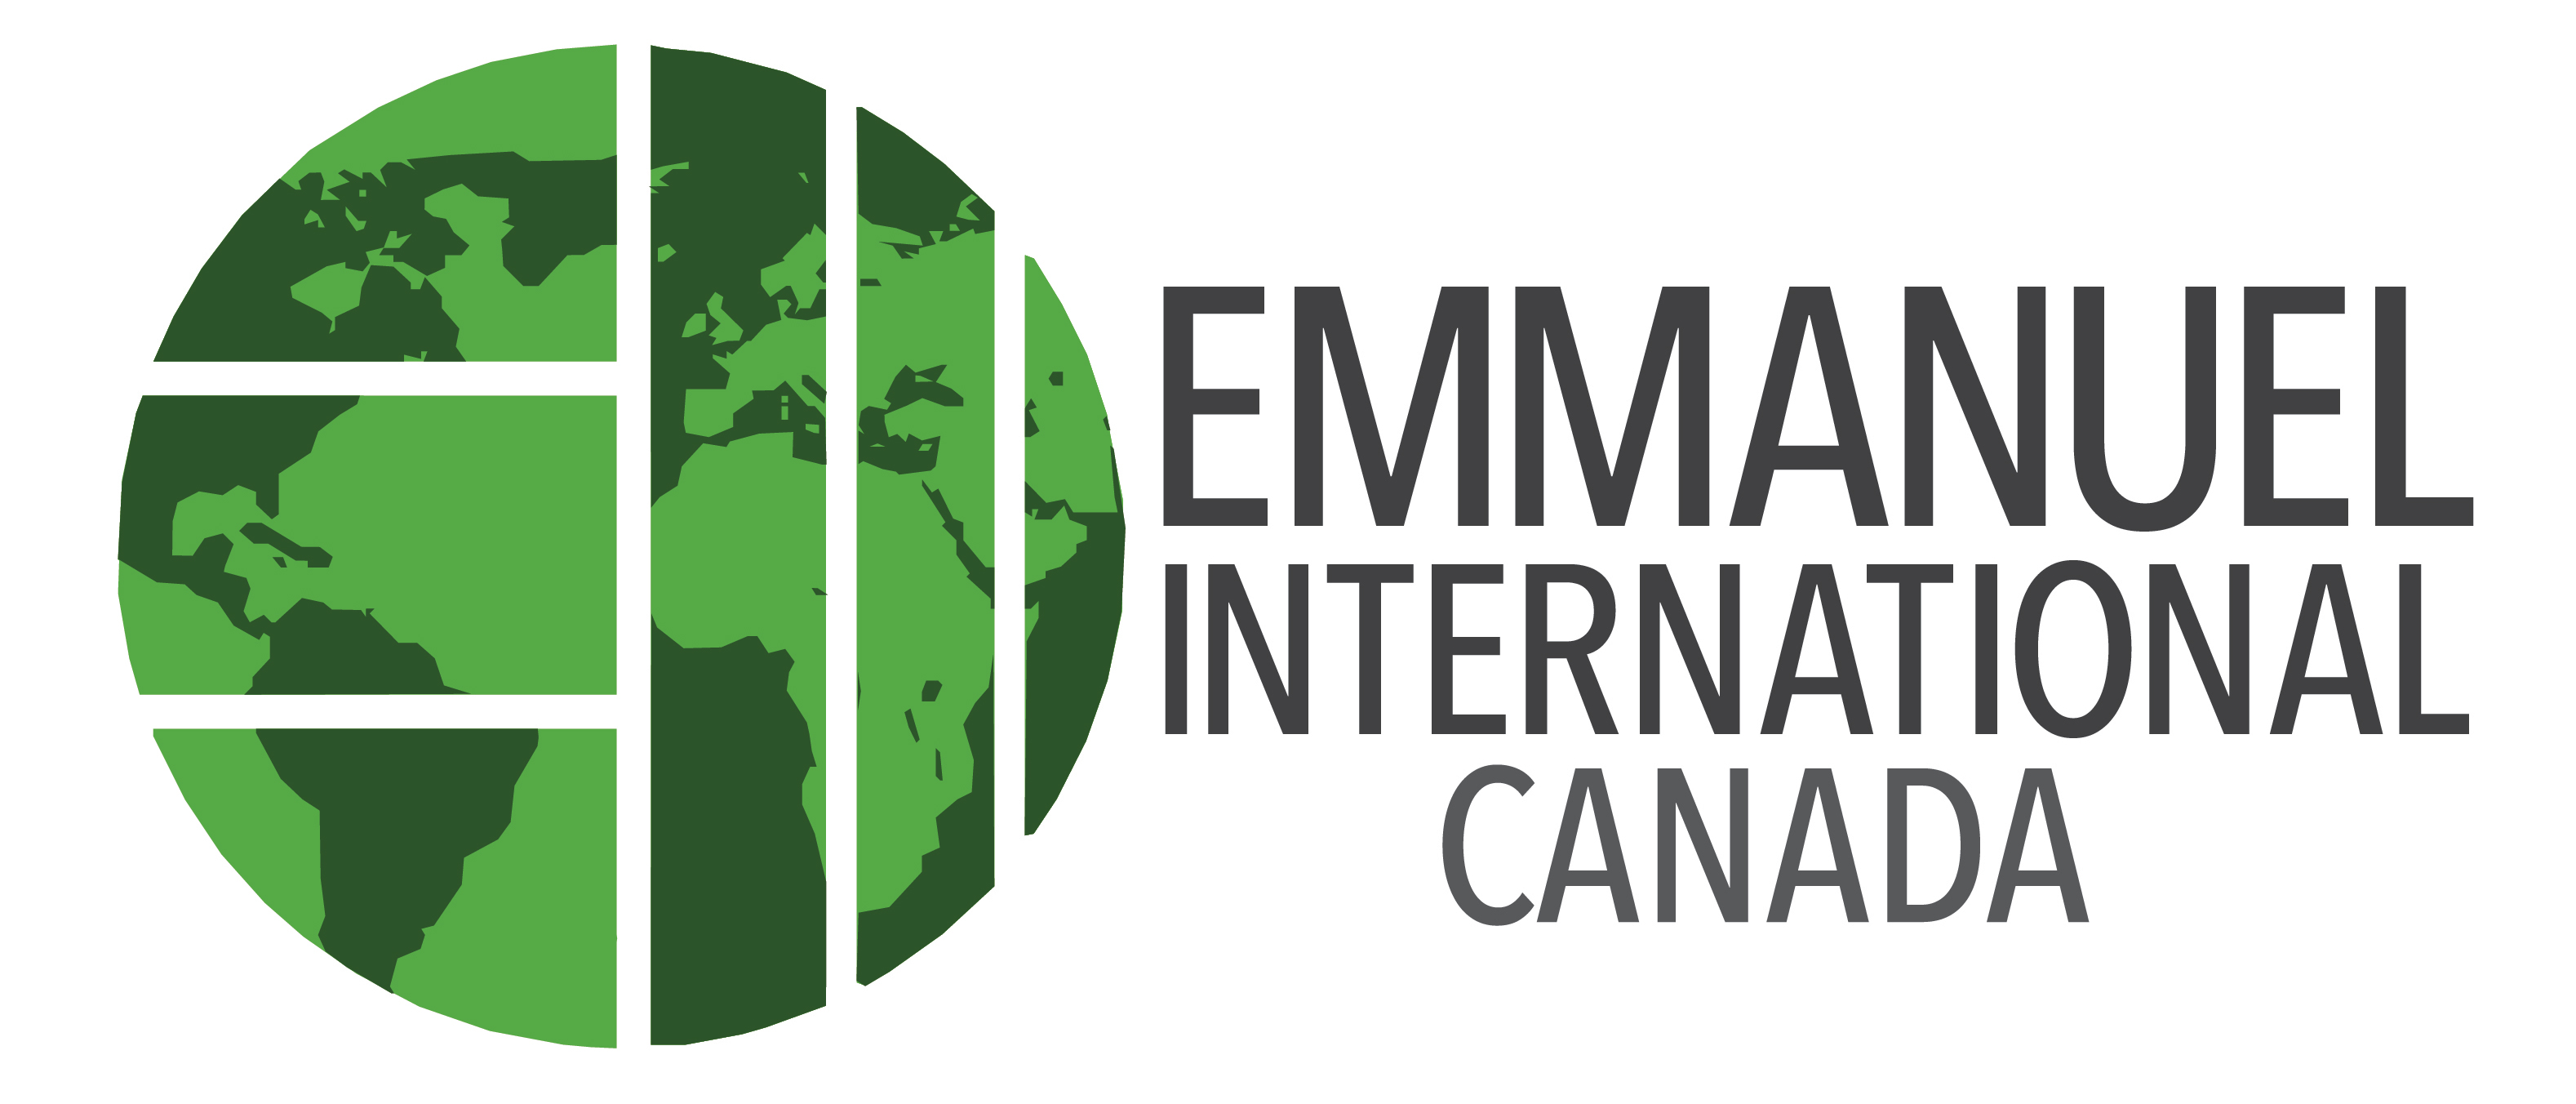 EMMANUEL RELIEF AND REHABILITATION INTERNATIONAL OF CANADA